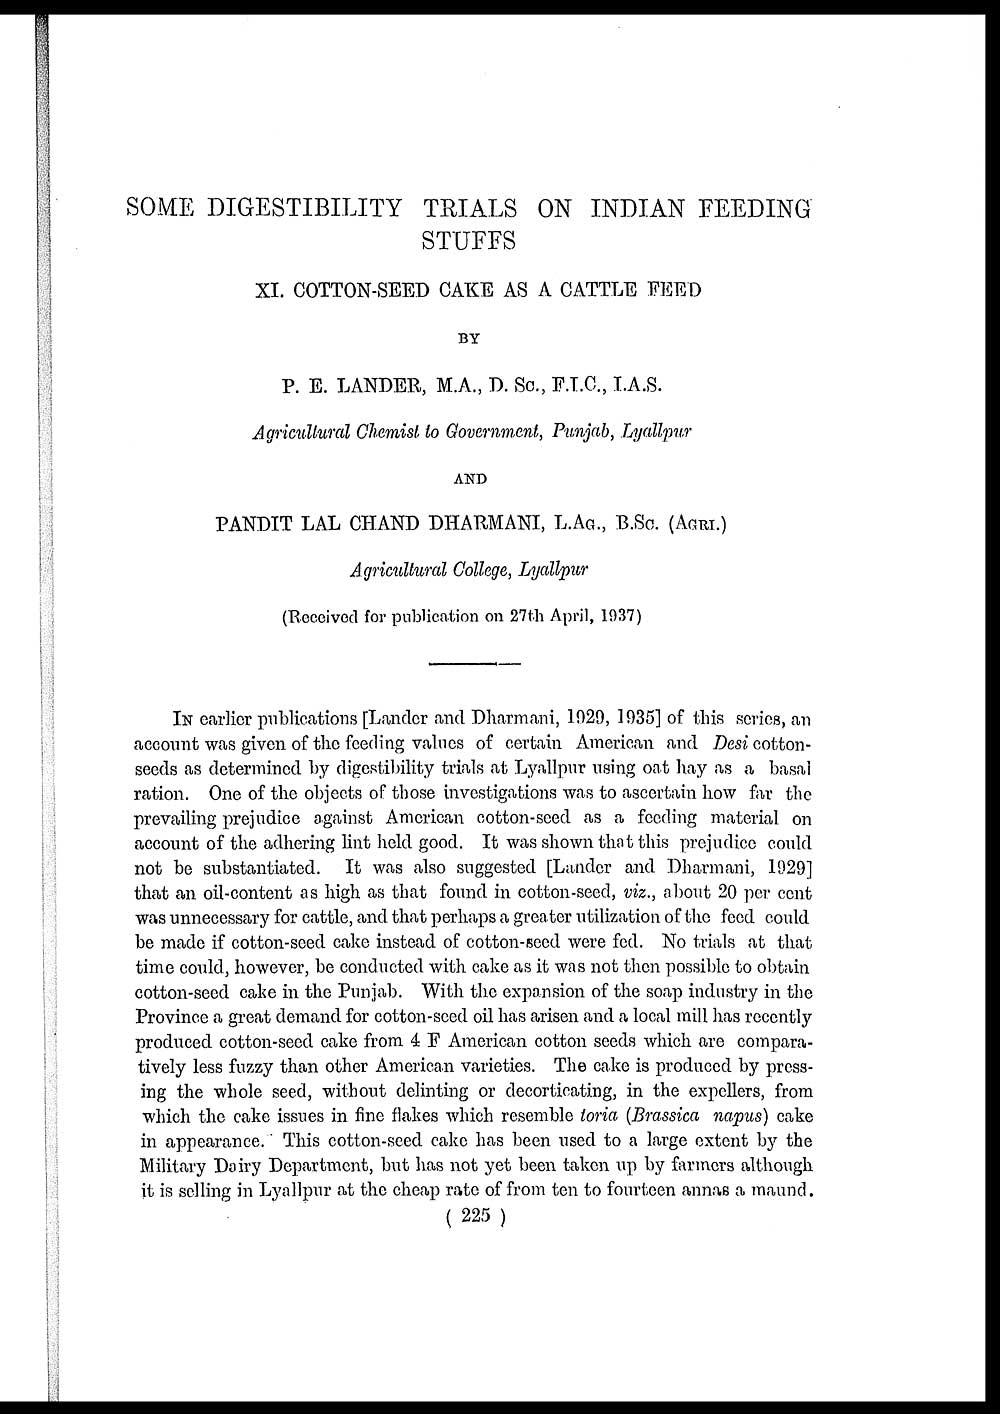 261) Page 225 - Medicine - Veterinary > Veterinary colleges and